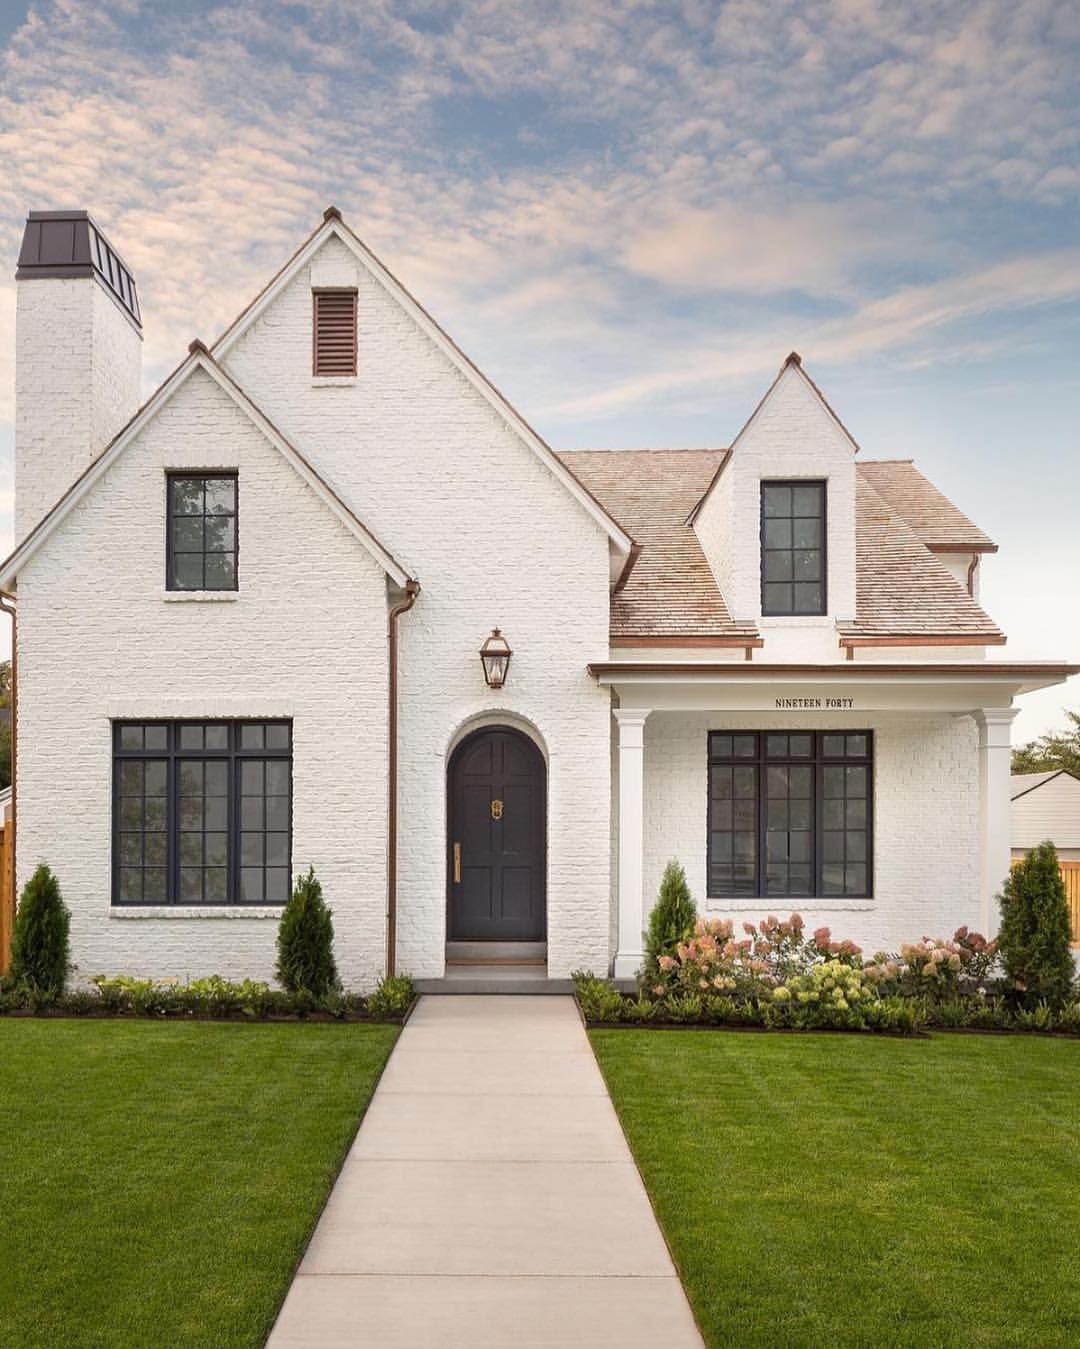 Pin By Shelli Huffman Vasquez On Great View From The Curb Tudor House Exterior House Exterior White Brick Houses